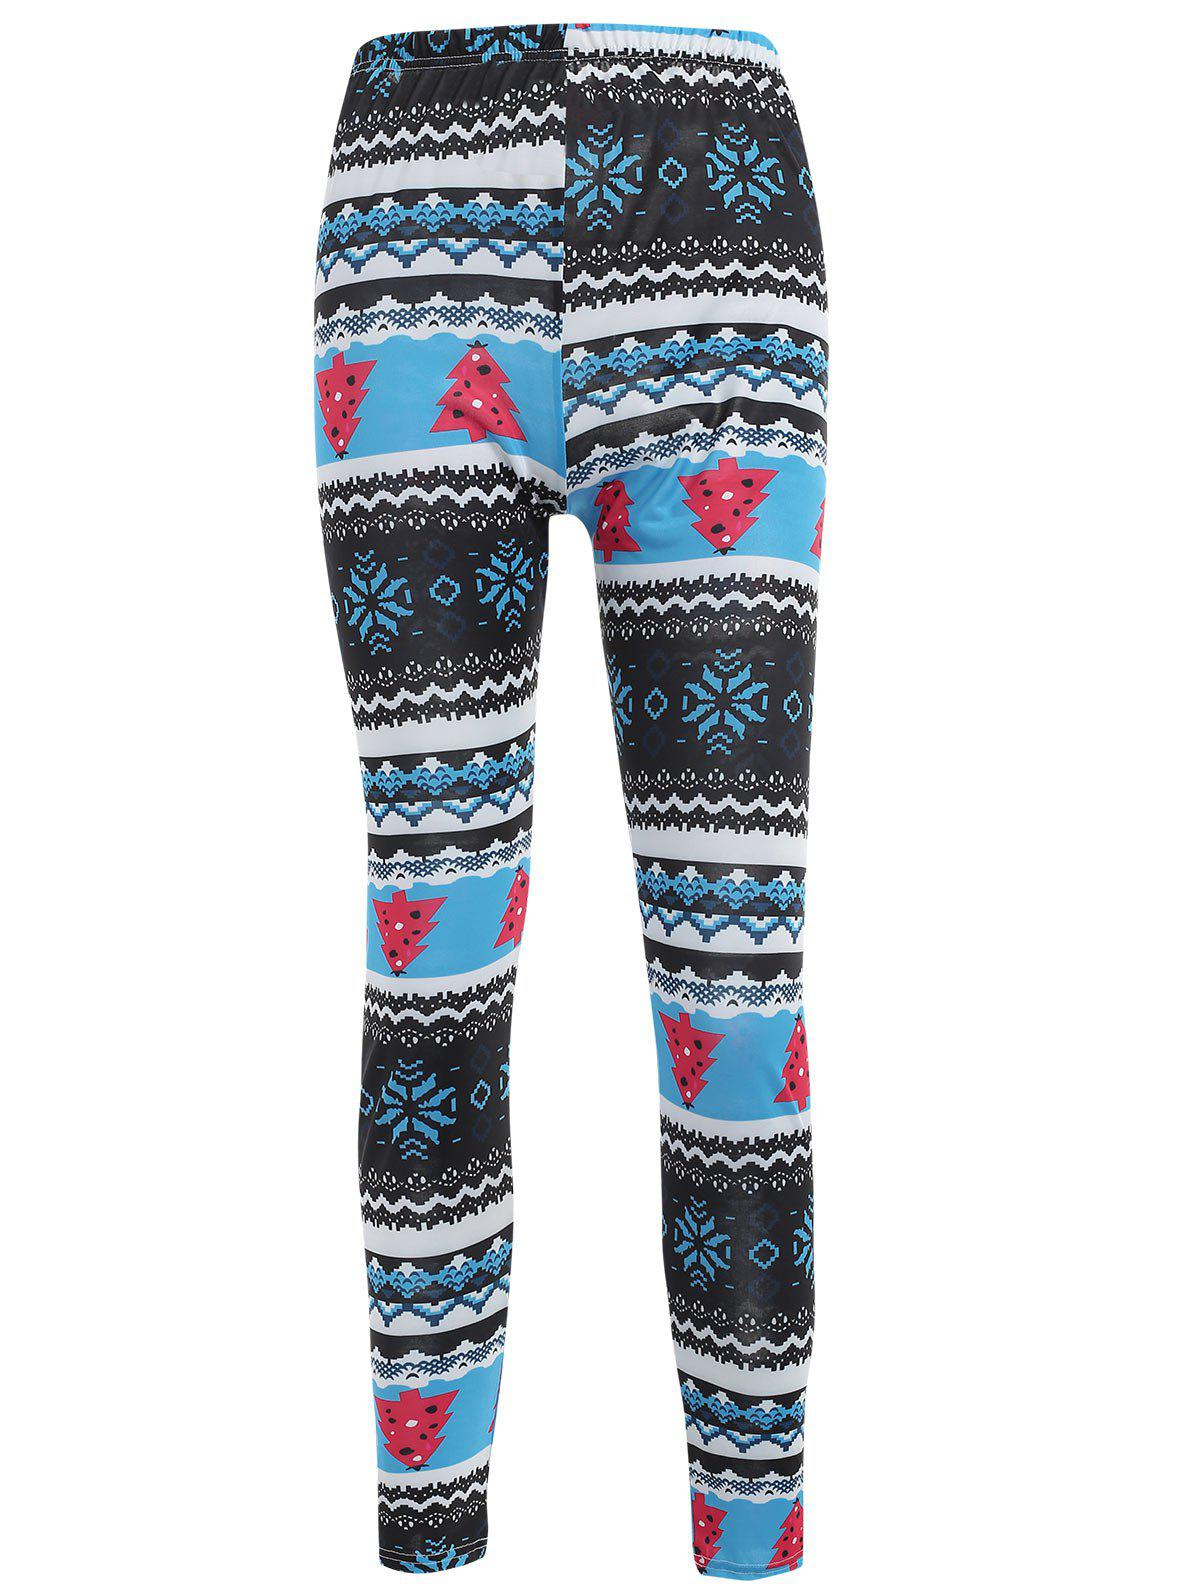 Shop Snowflake Print High Waist Leggings